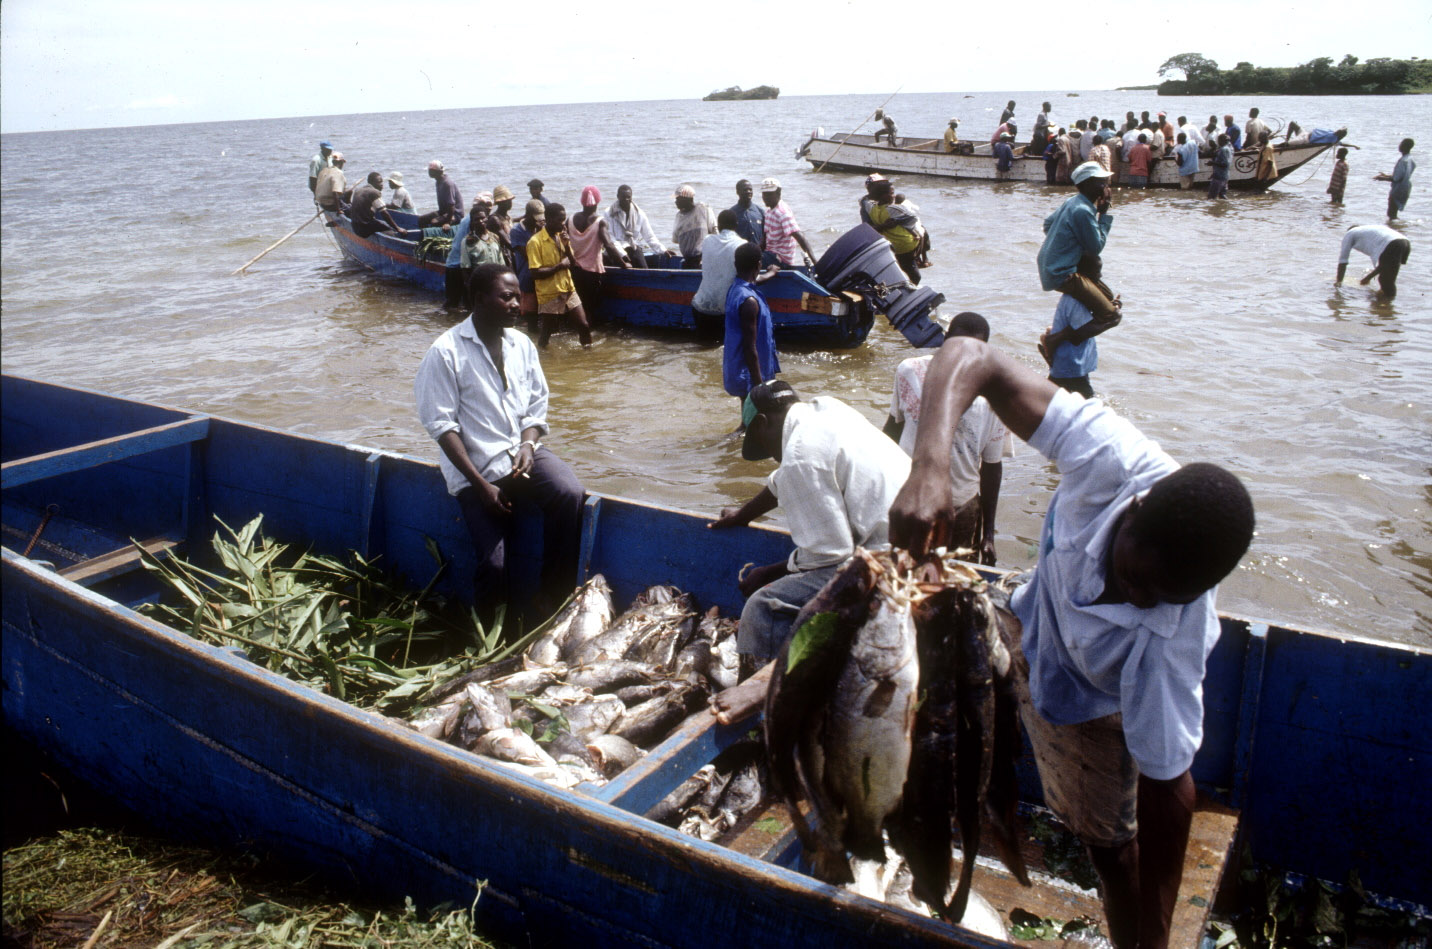 Unloading fish as part of the daily arrival of fishing boats on Lake Victoria near Entebbe.